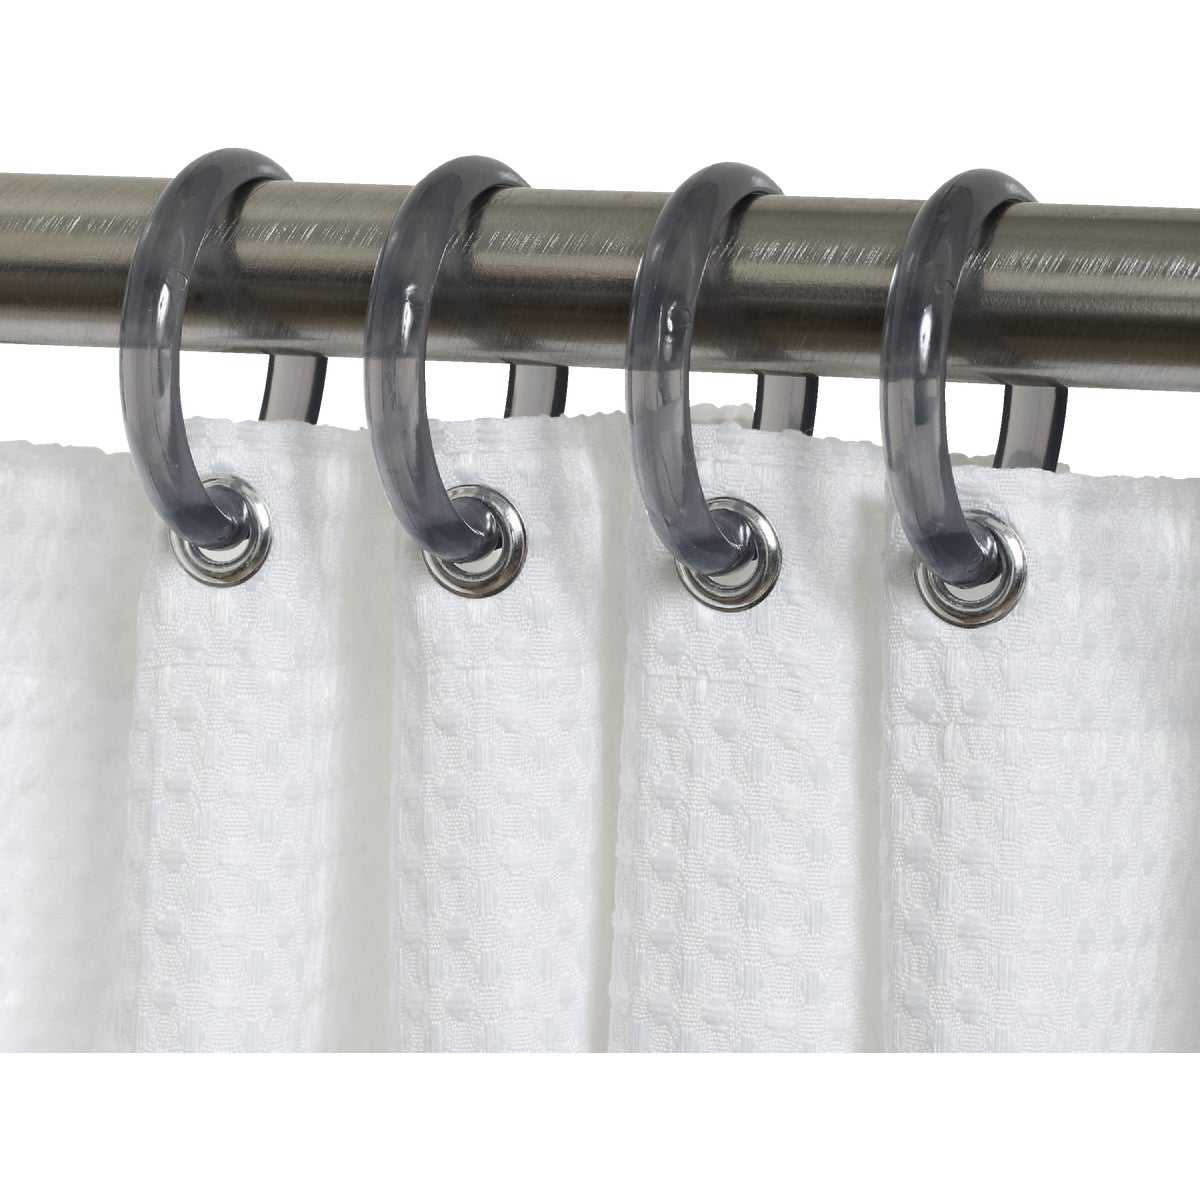 CHR SHOWER CURTAIN RING - SSR001NT by Zenith Prod Corp